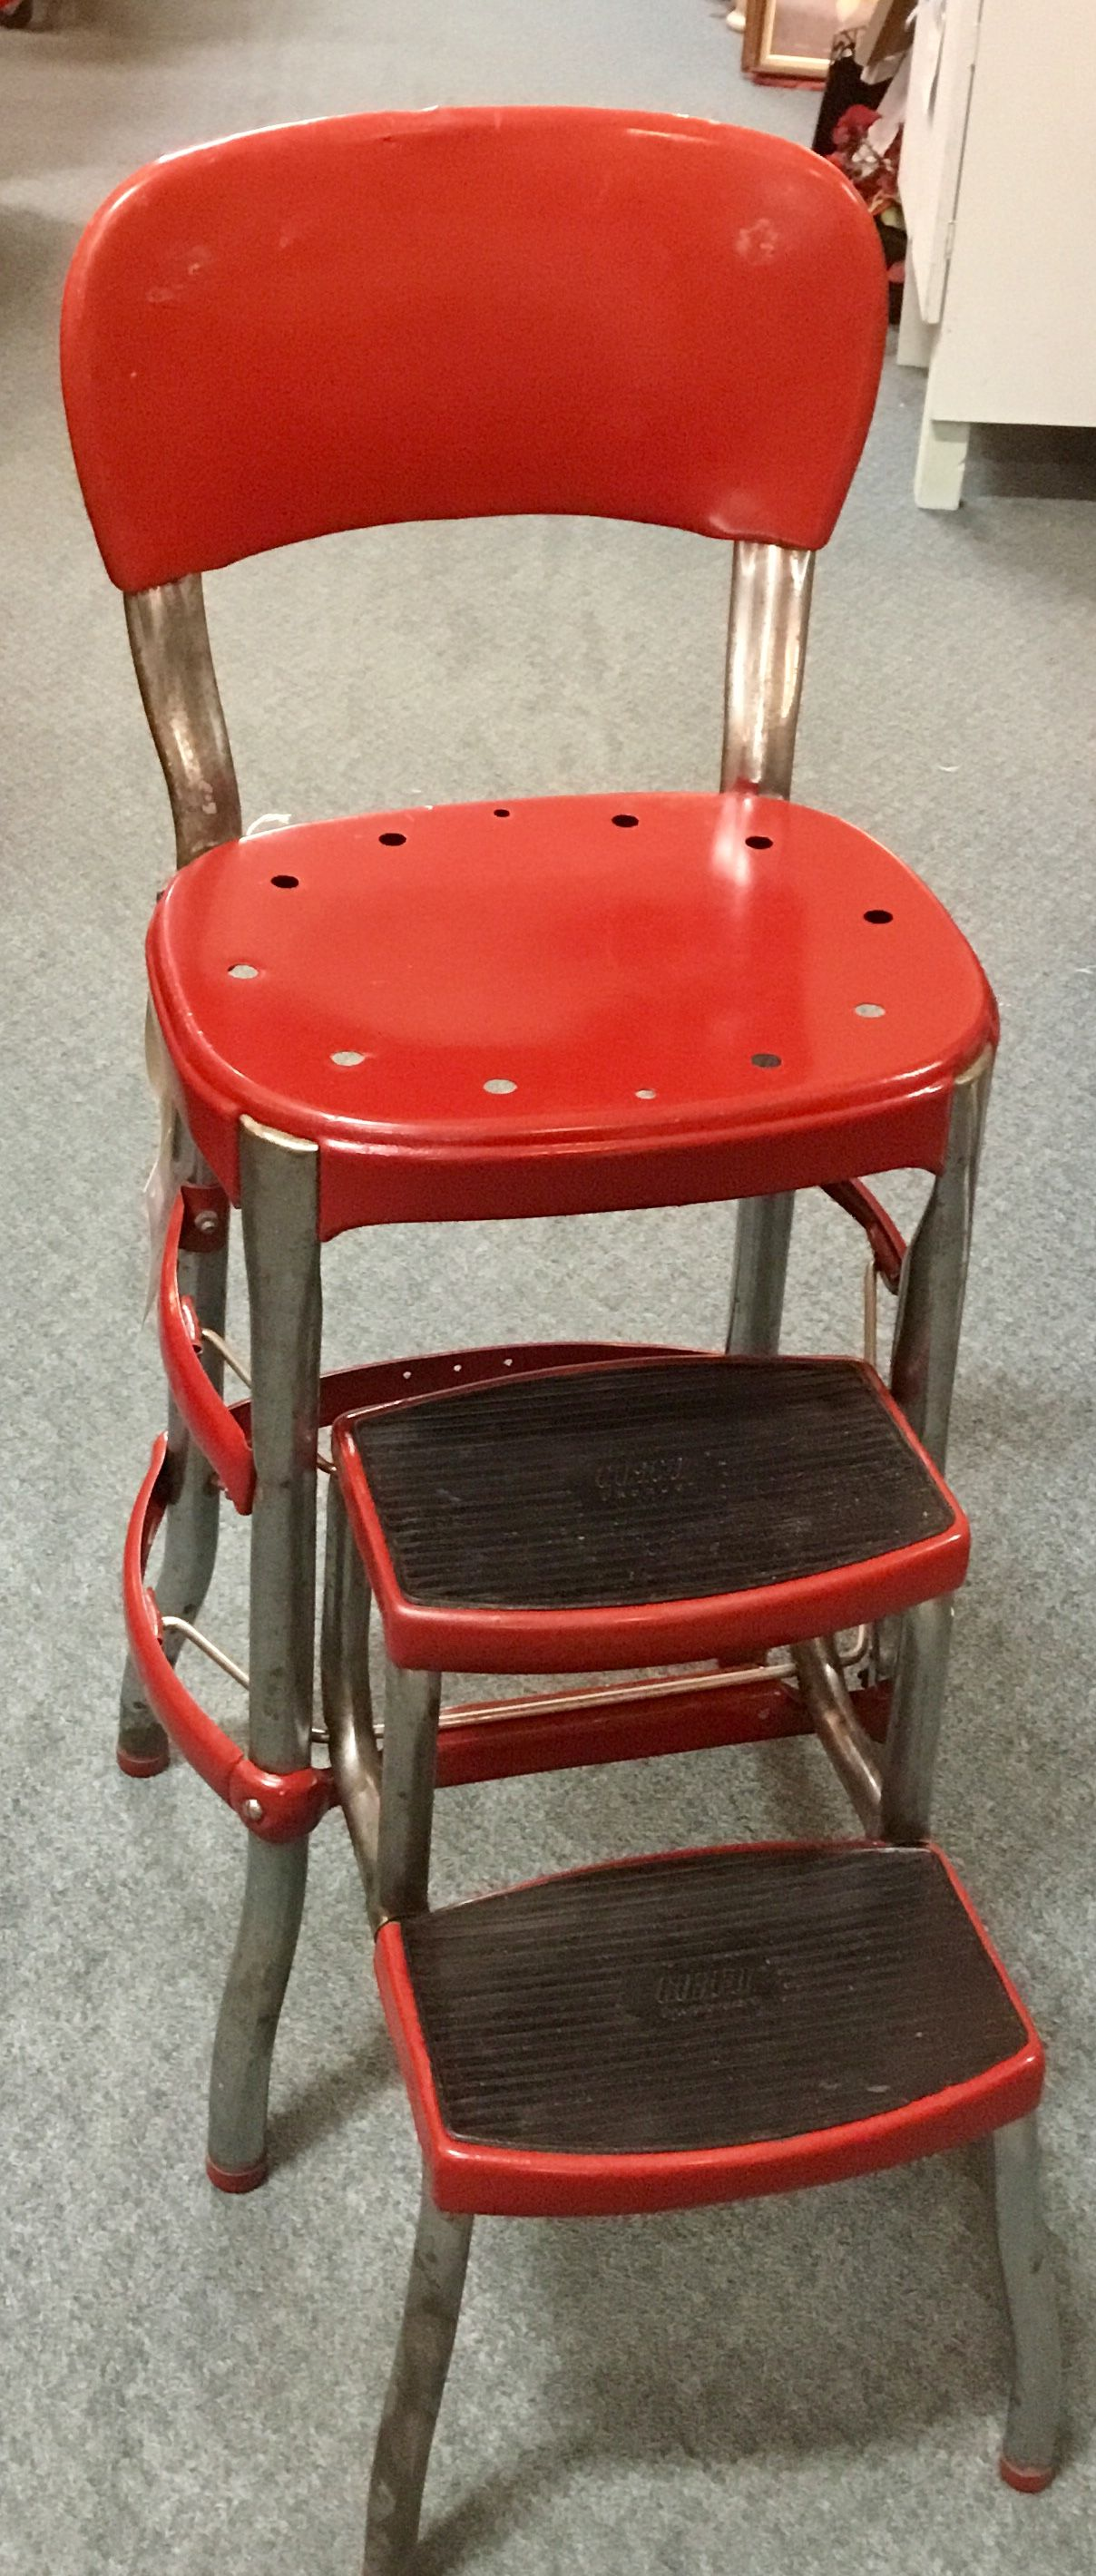 Surprising Remember Growing Up With A Kitchen Stool They Are Just As Ibusinesslaw Wood Chair Design Ideas Ibusinesslaworg